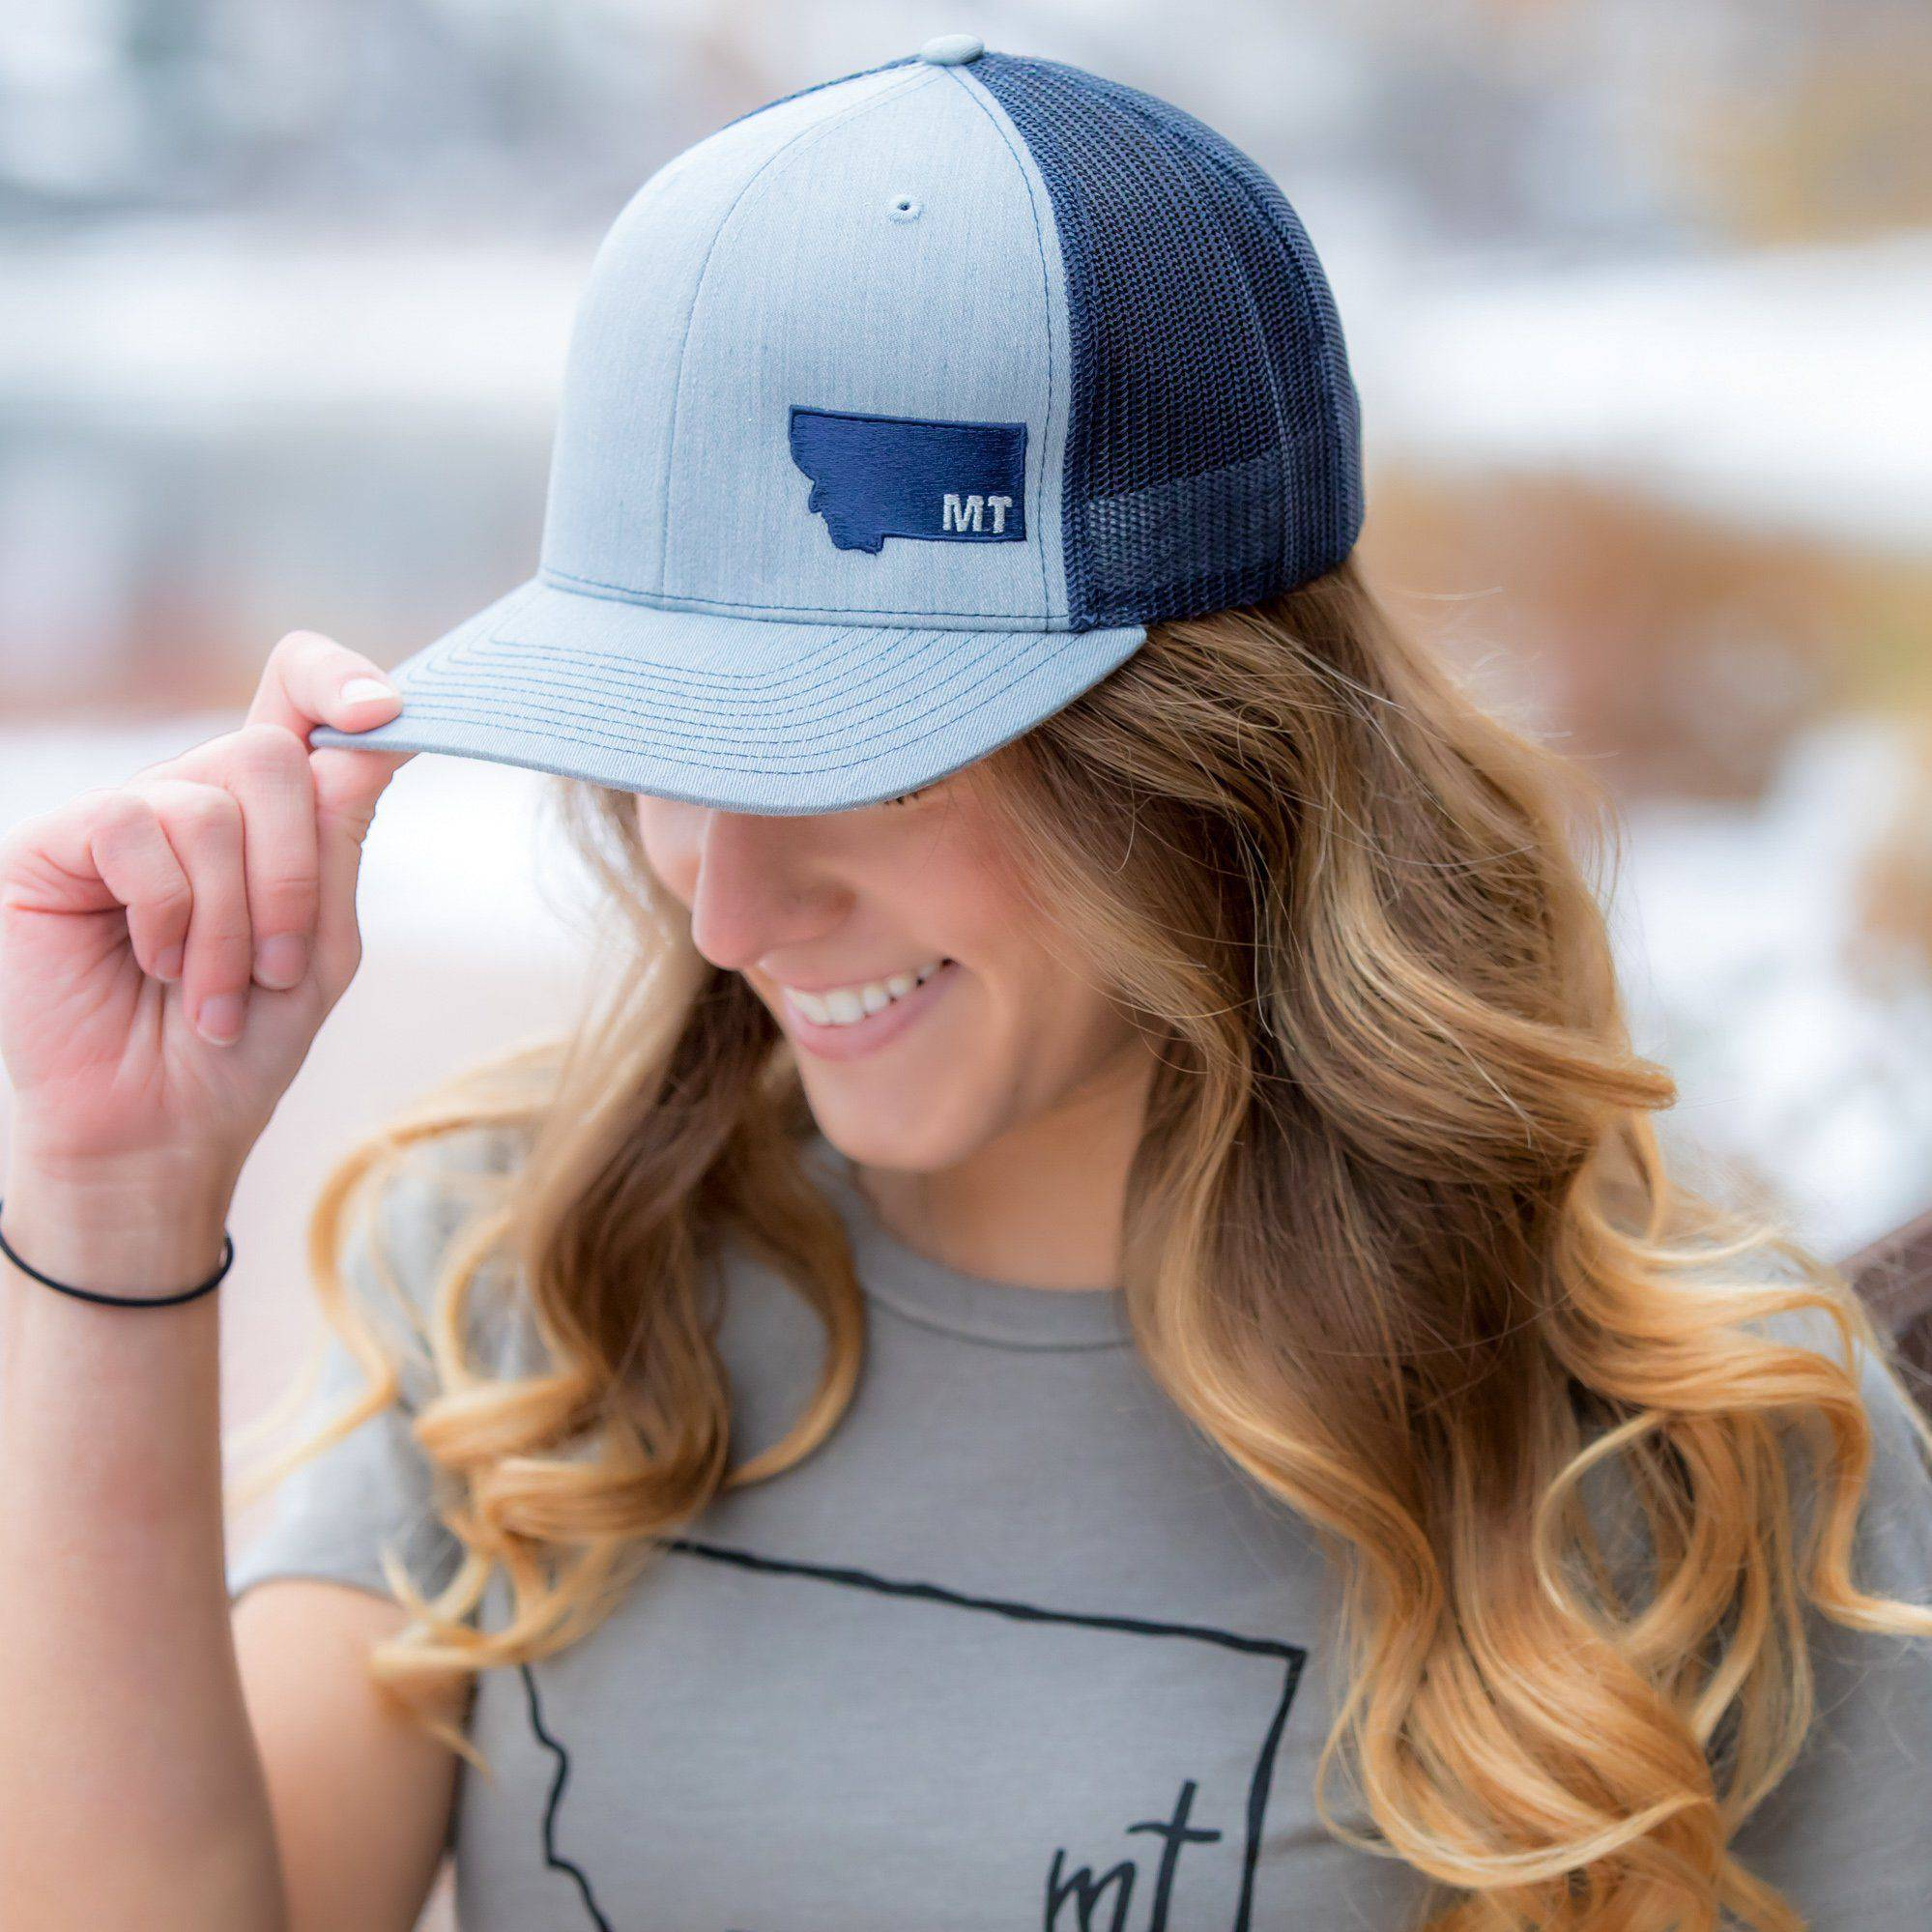 The Classic MT Hat - MONTANA SHIRT CO.